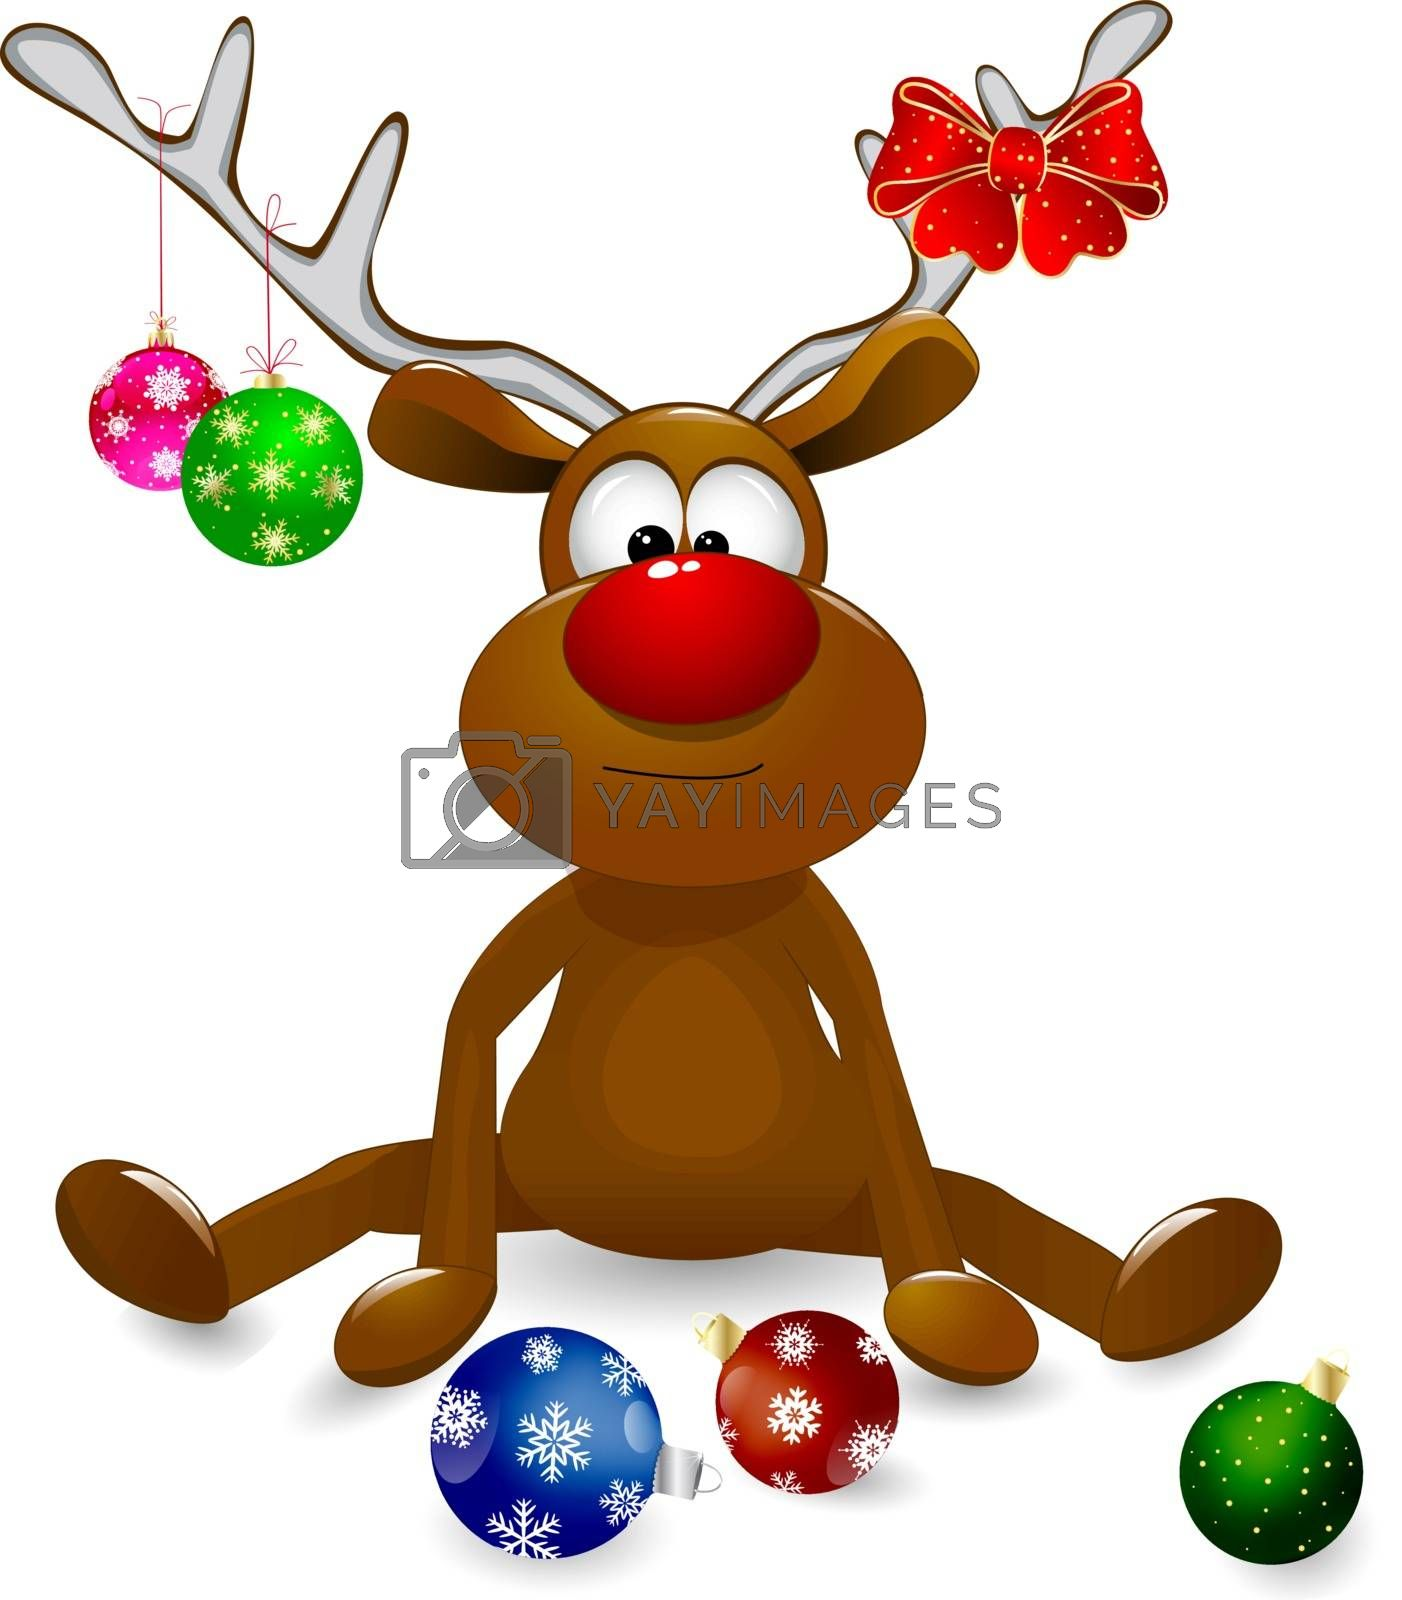 Cartoon deer decorated with Christmas fir-decorations and a bow-knot